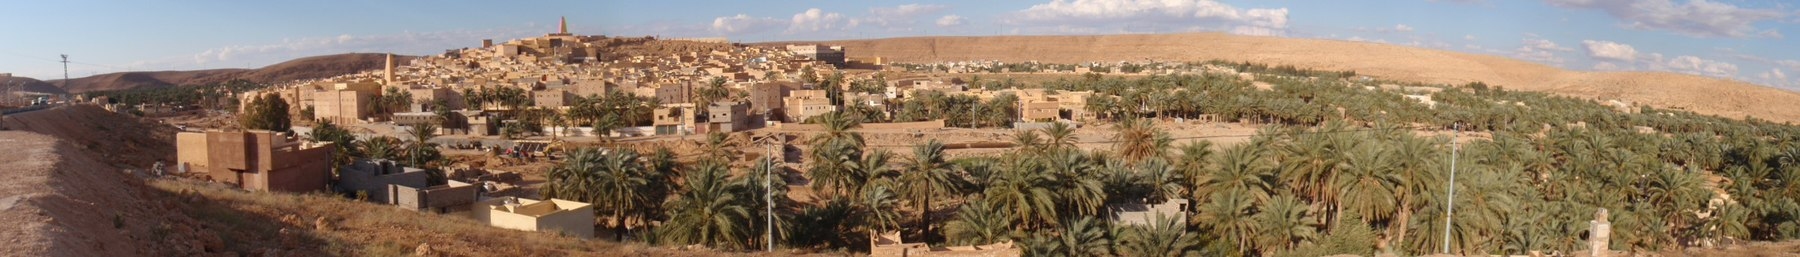 Ancient cities in the M'zab Valley.